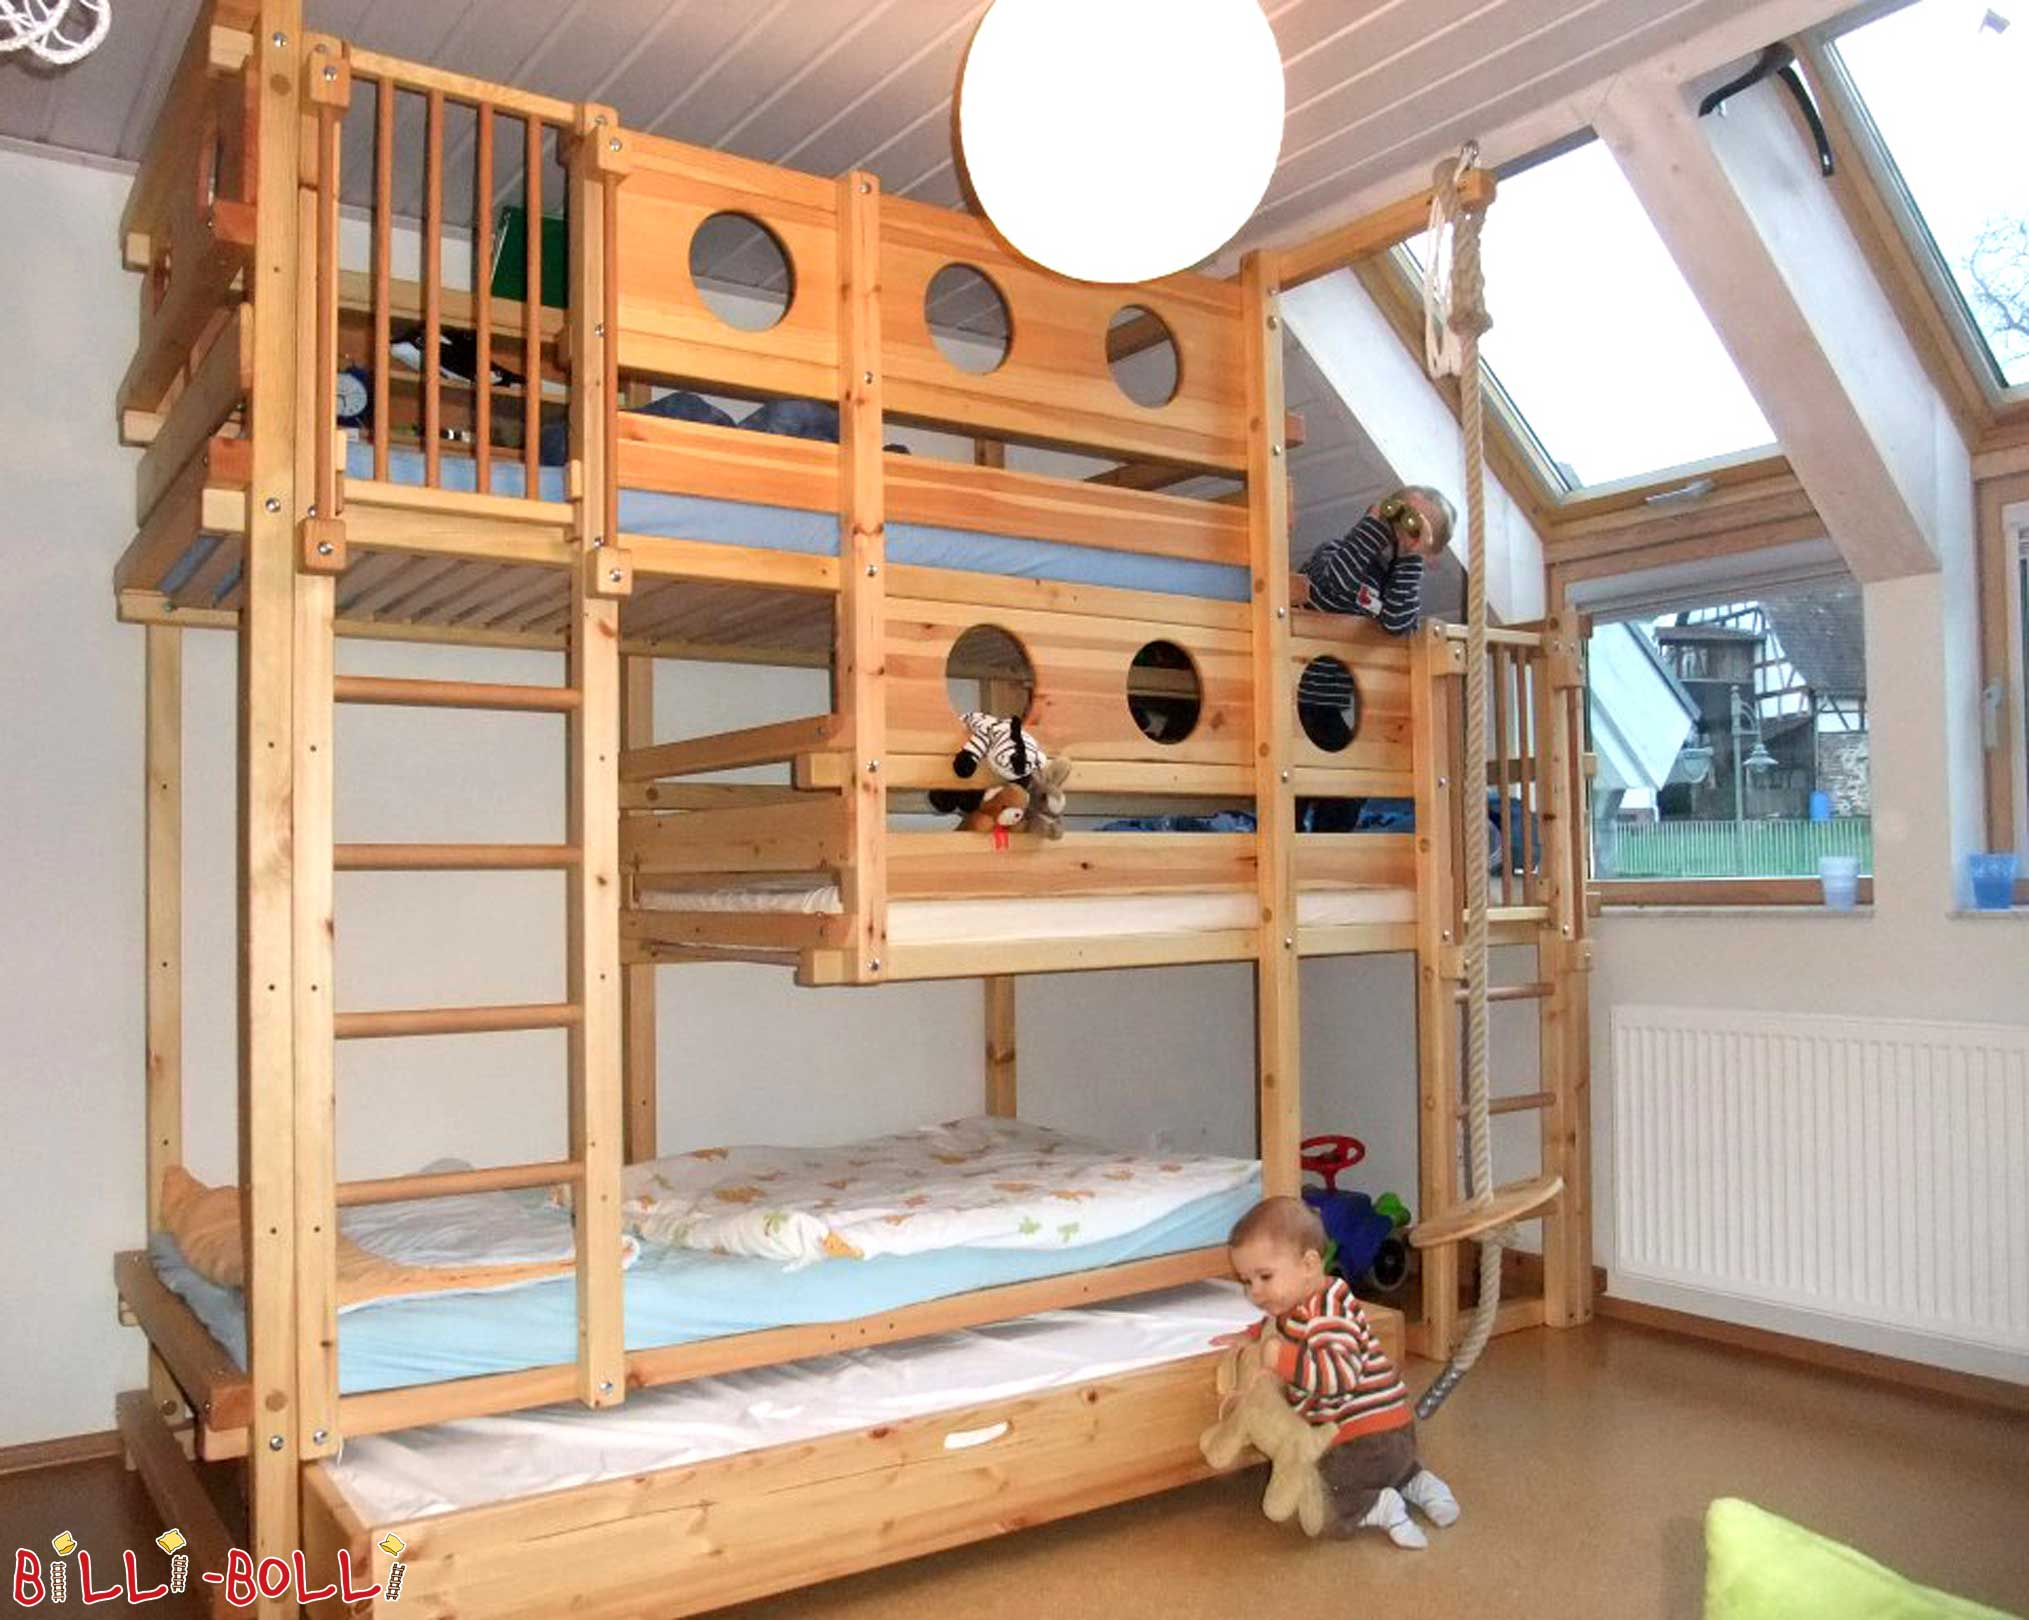 Triple Bunk Beds: high-riser for 3 kids (Bunk Beds)